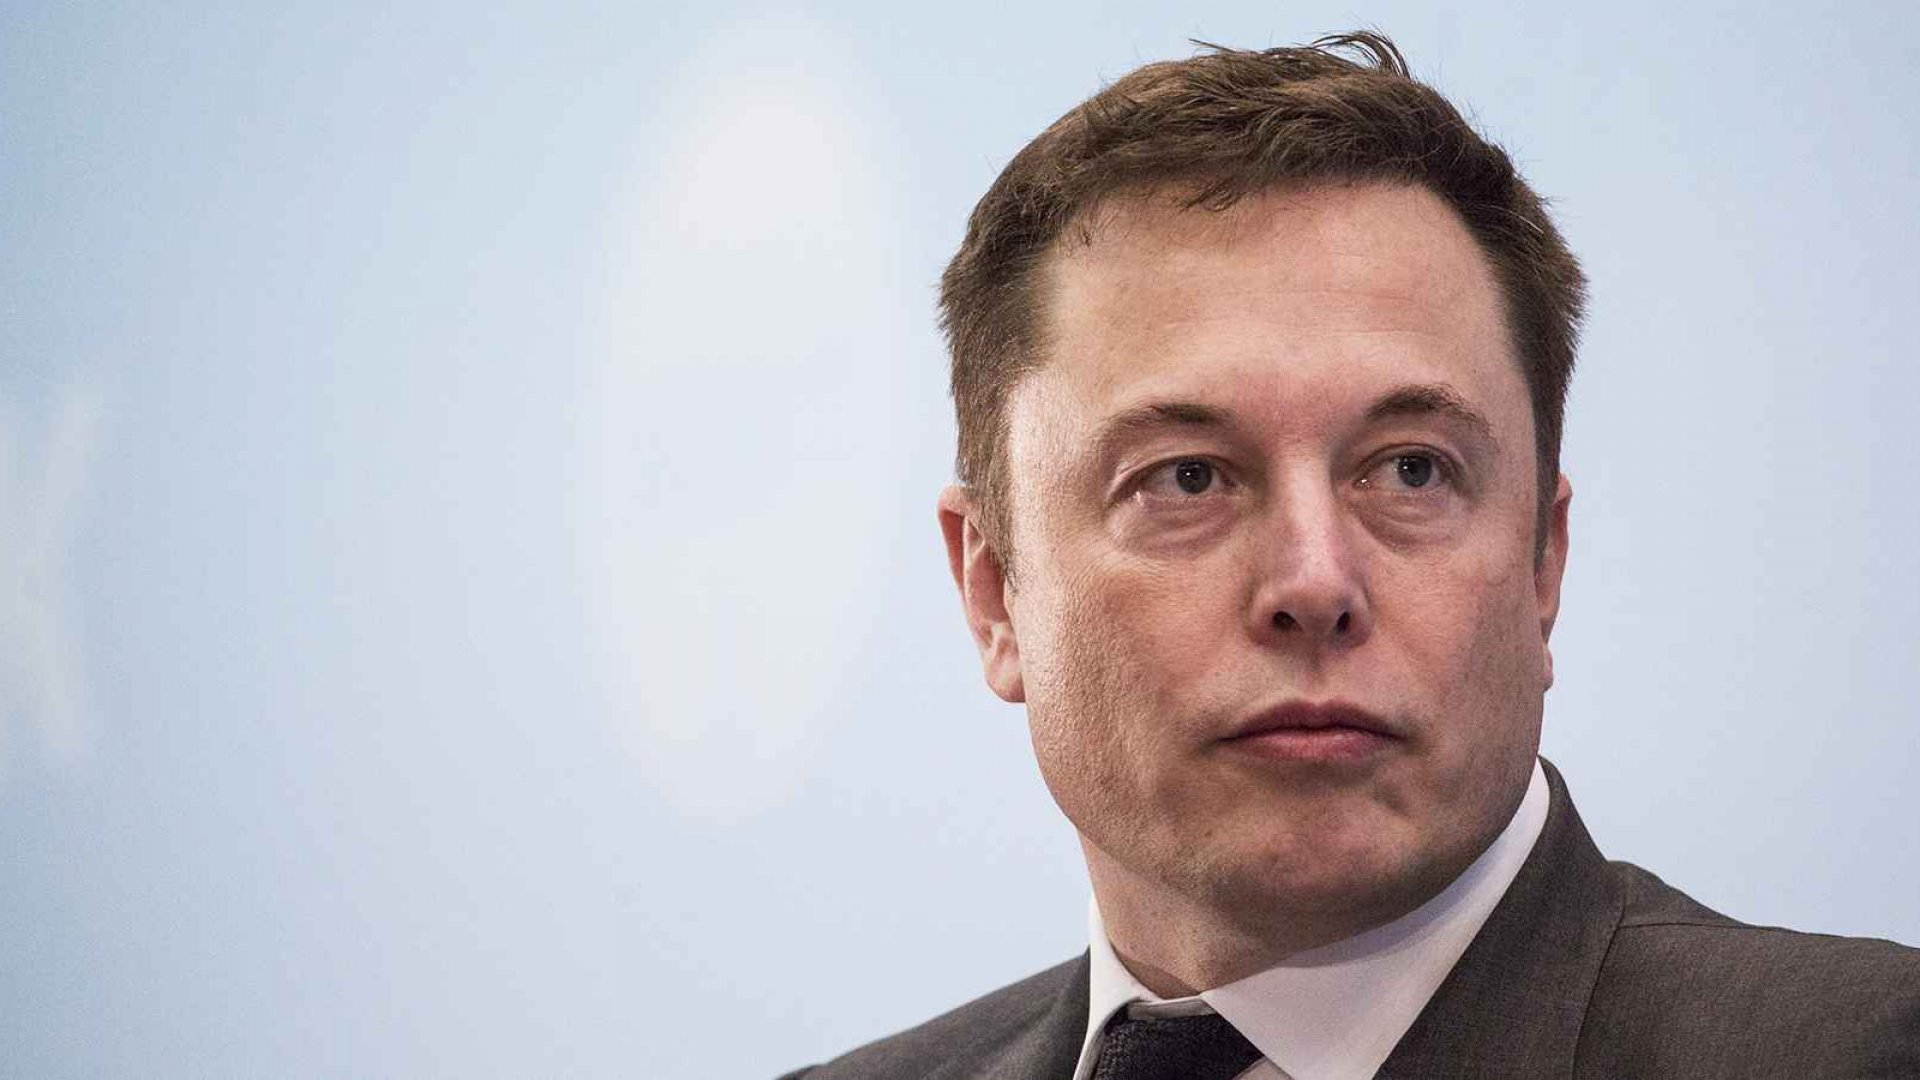 Elon Musk, founder and CEO of SpaceX.